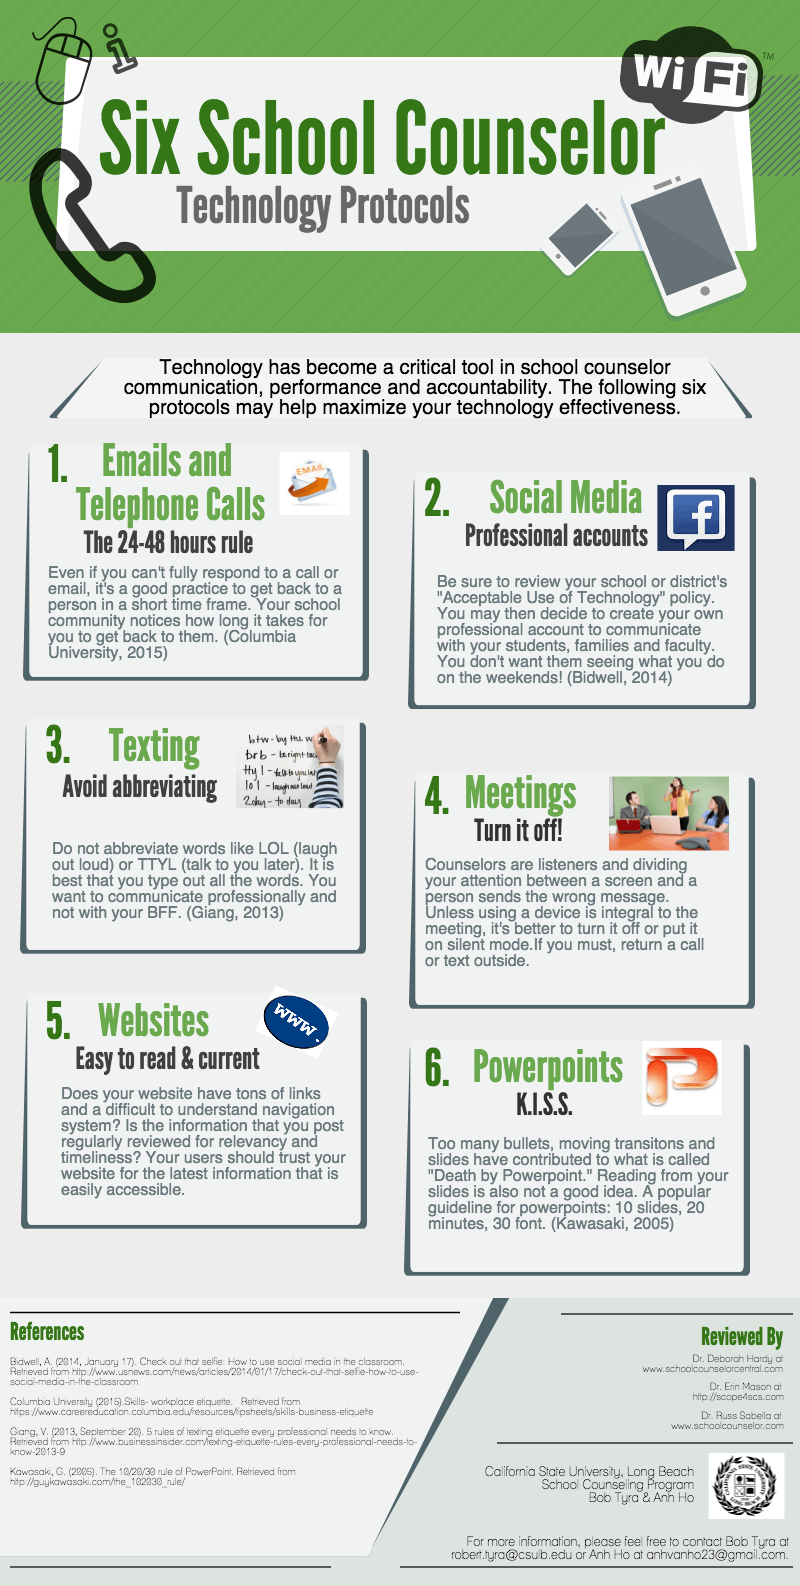 Six School Counselor Technology Protocols Infographic